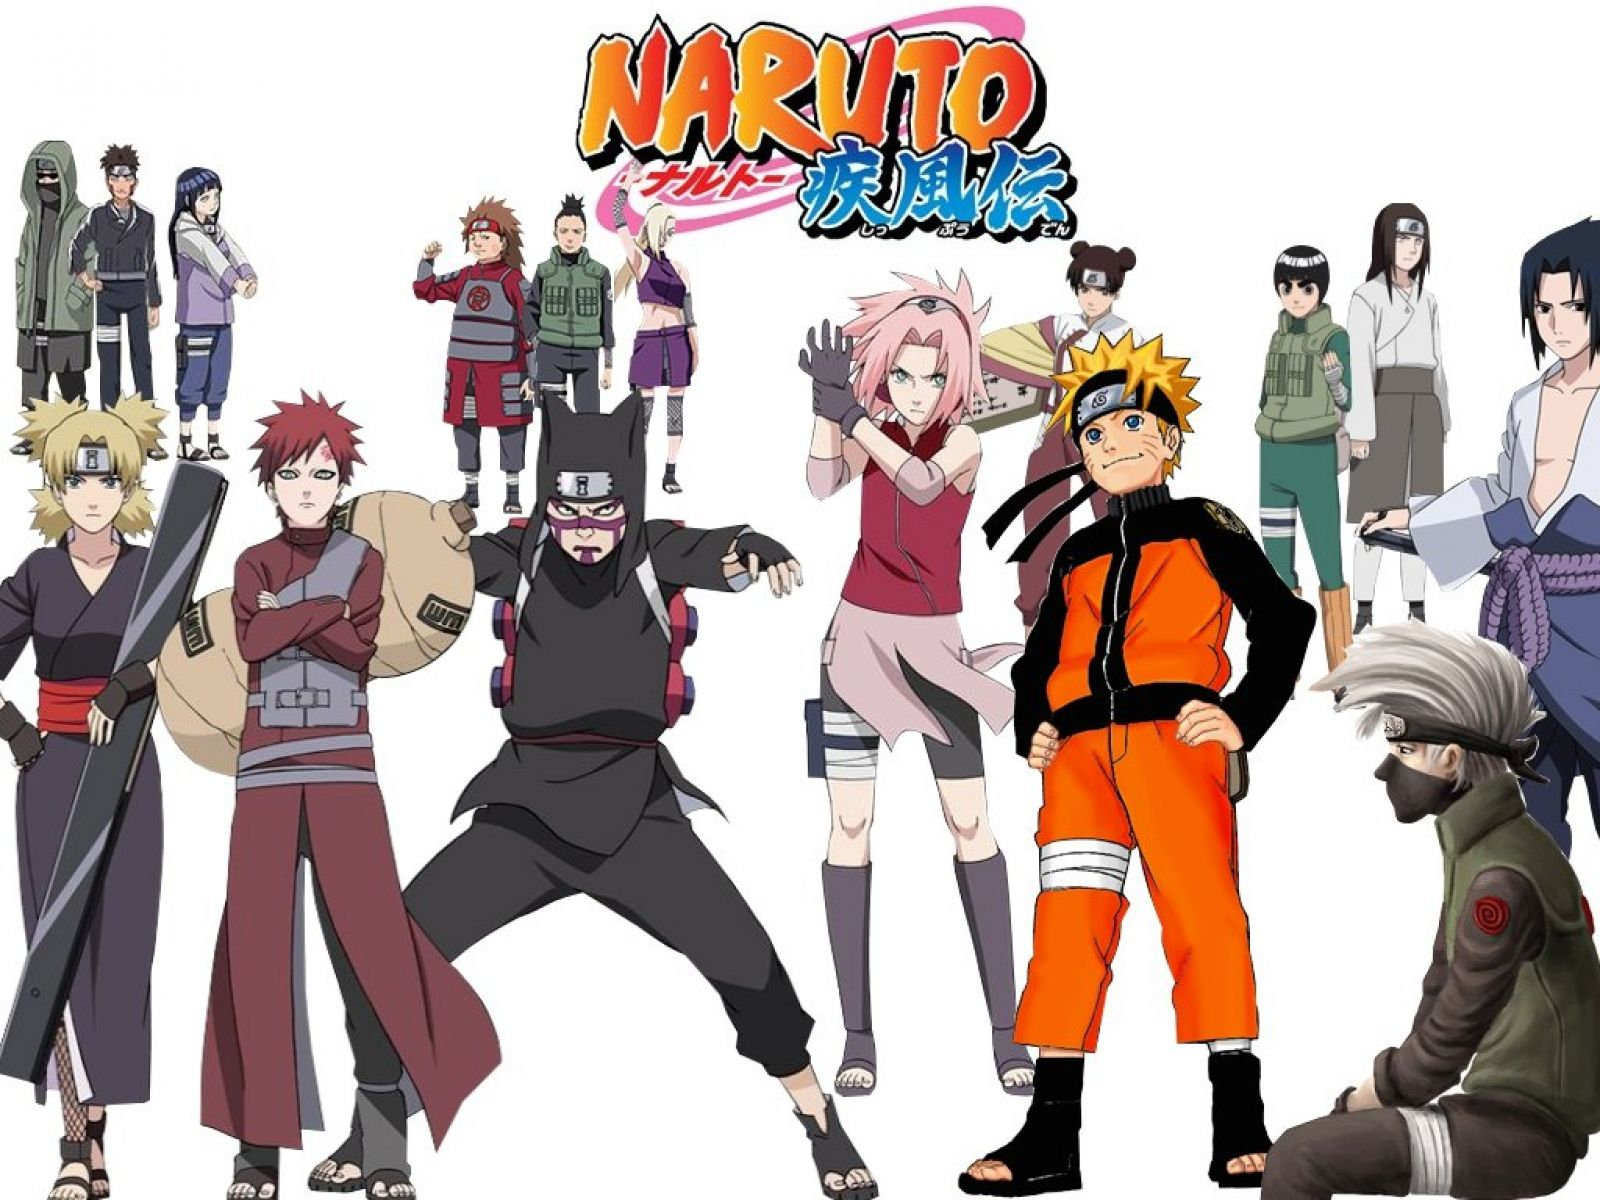 Naruto Women Characters Wallpaper Backgrounds Desktop Background Naruto Characters In Narut Naruto Shippuden Characters Naruto Wallpaper Naruto Shippuden